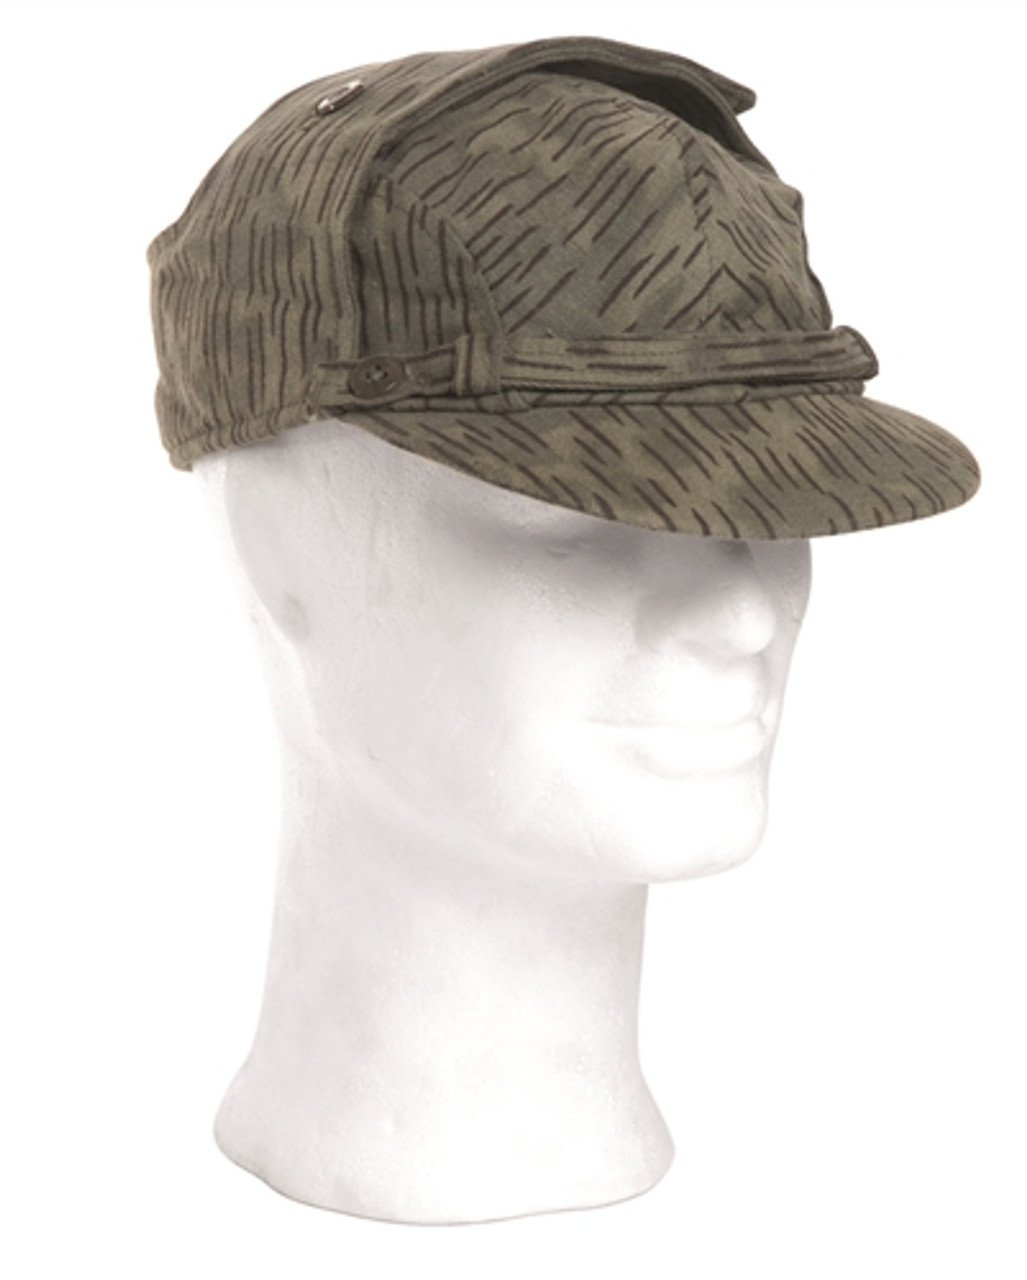 Czech M60 Camo Field Cap - Used from Hessen Surplus